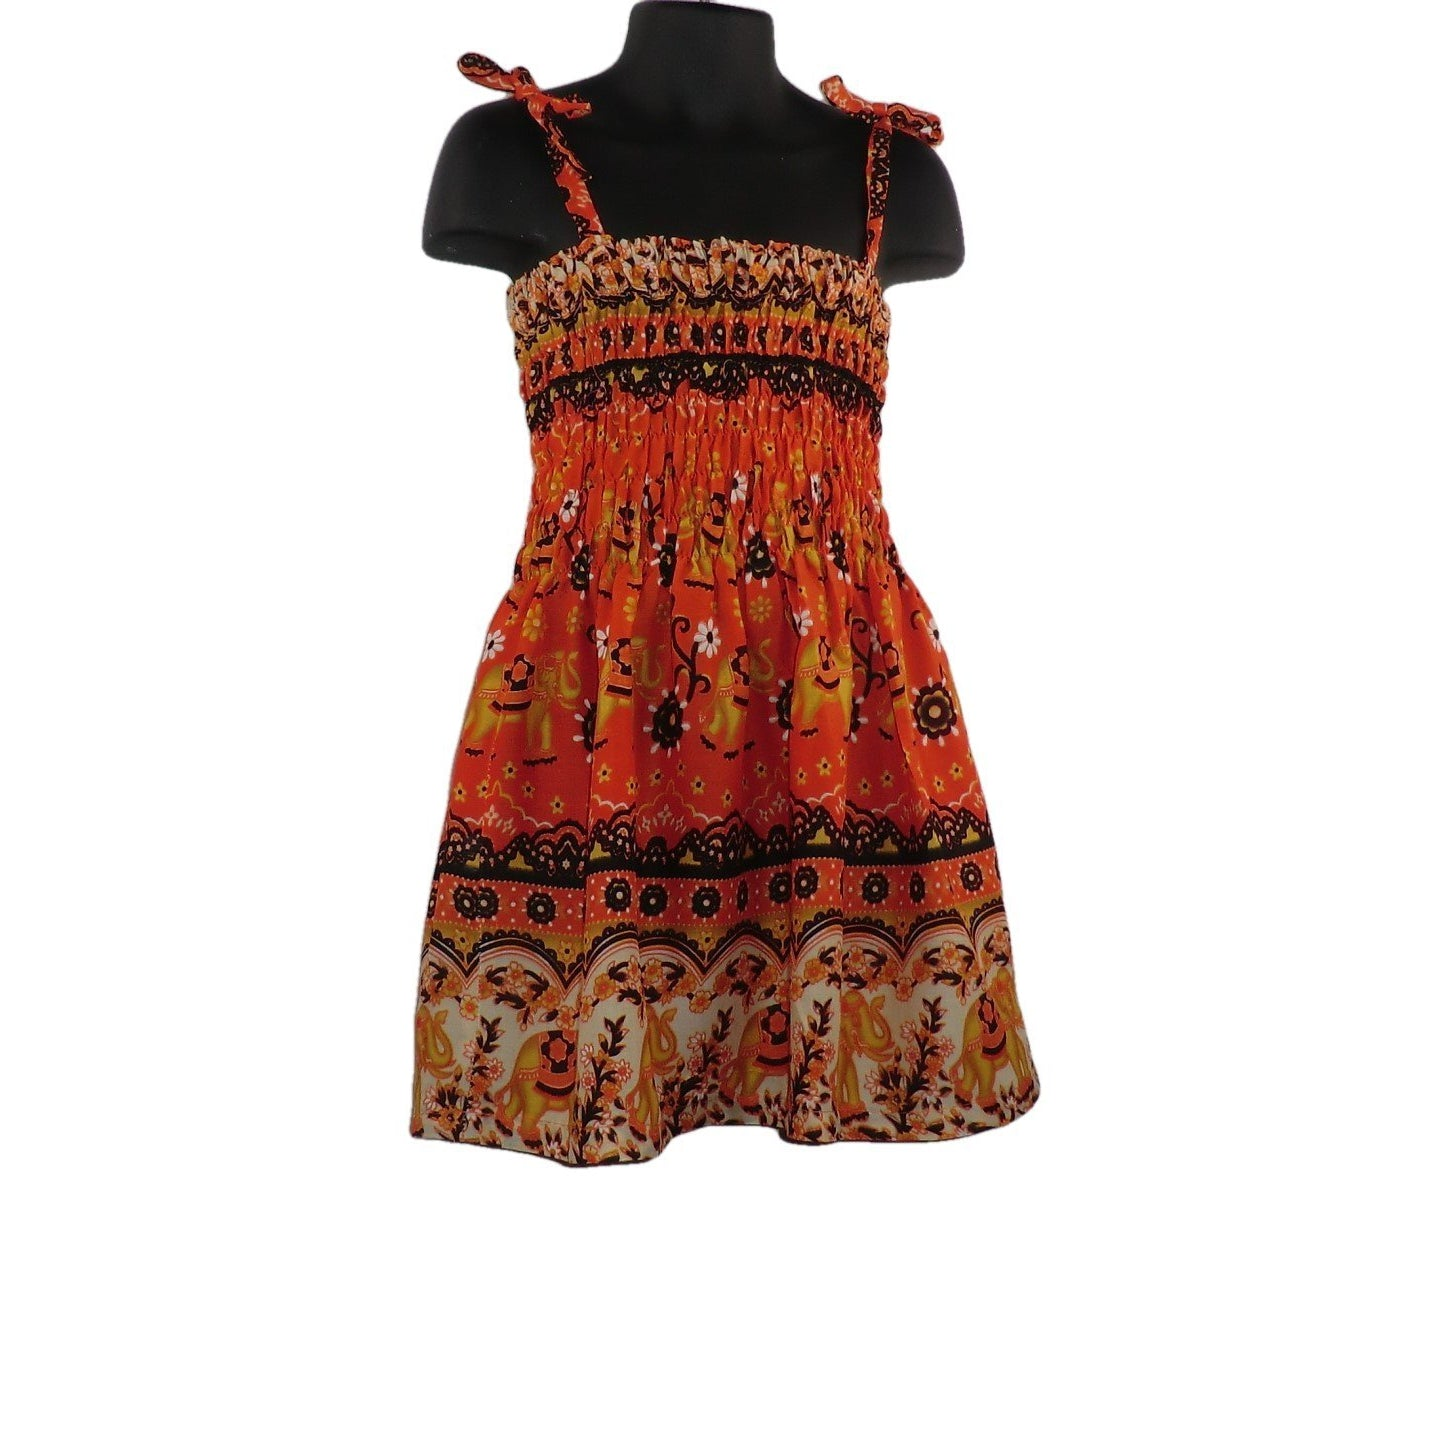 Sleeveless Dresses 3 - 5yrs - Matico